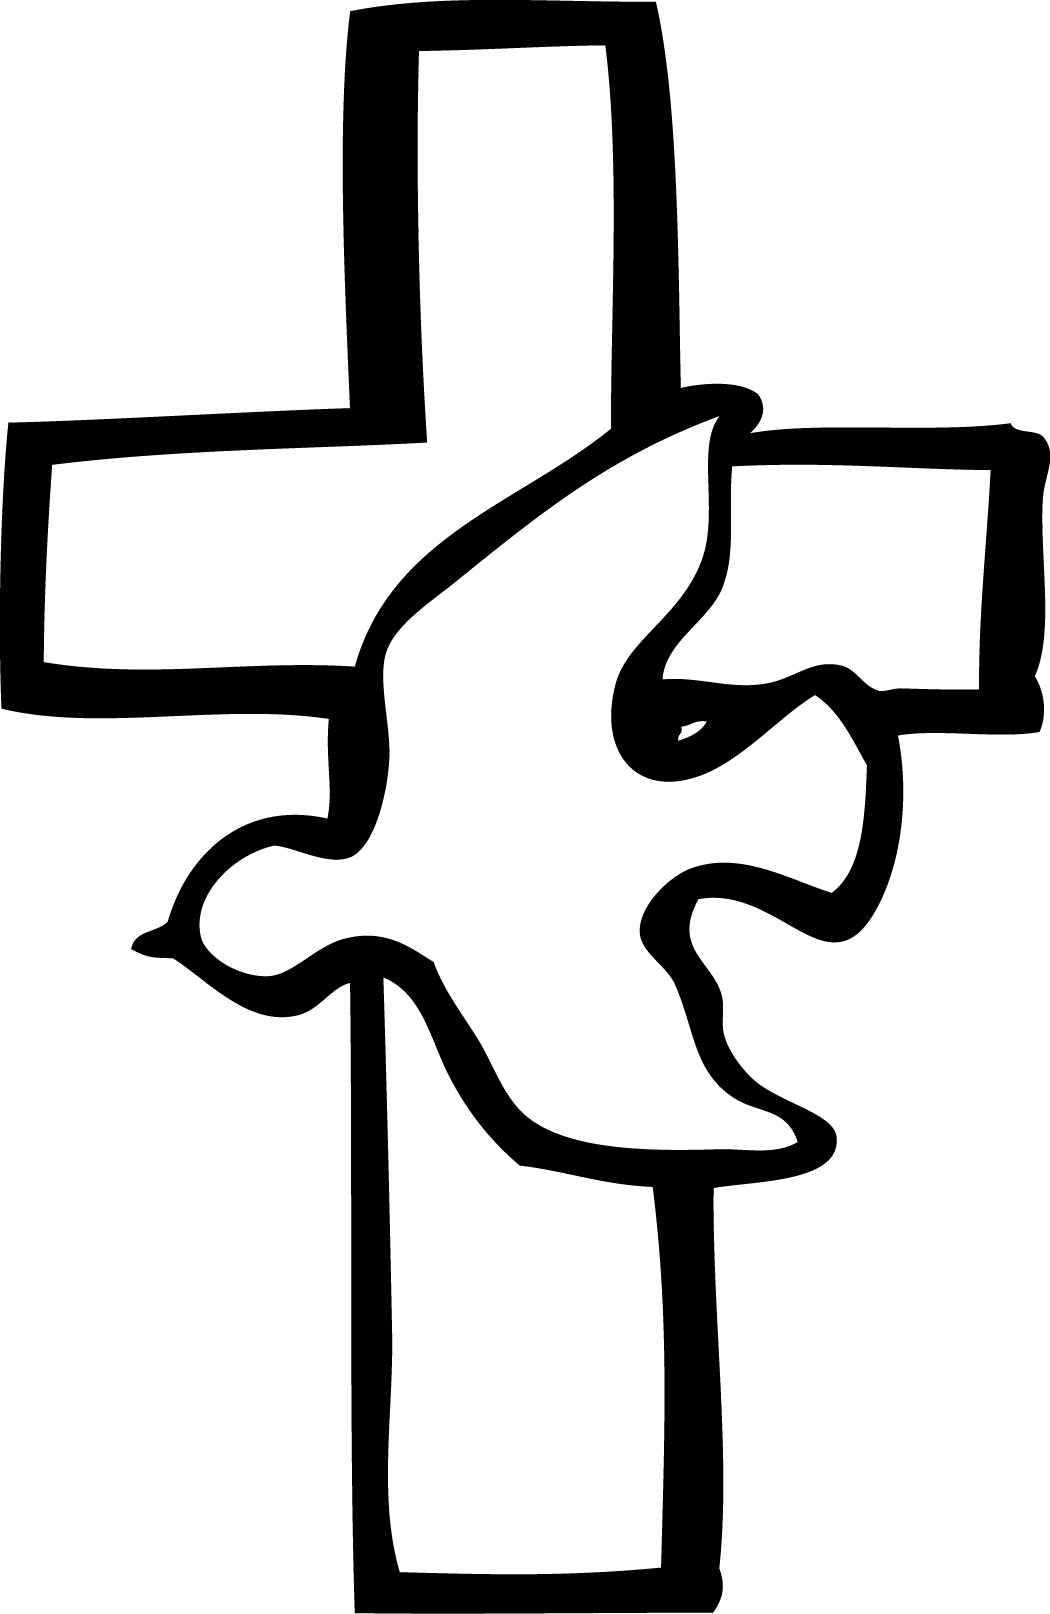 Free Catholic Clipart - Catholic Clipart